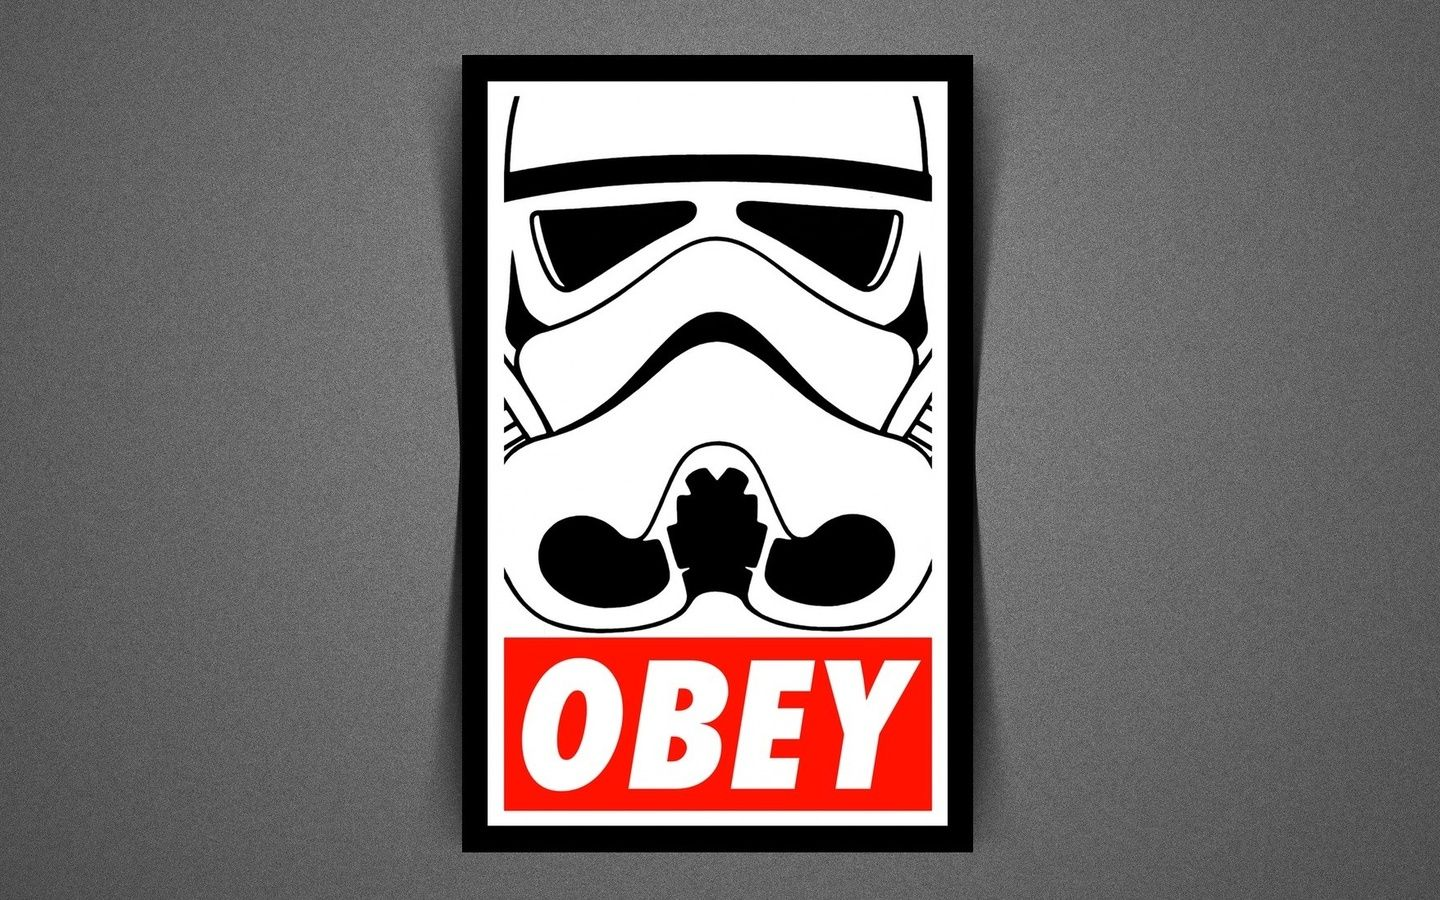 5 Best Obey Wallpapers For Your Pc Desktop Or Mac Wallpapers View